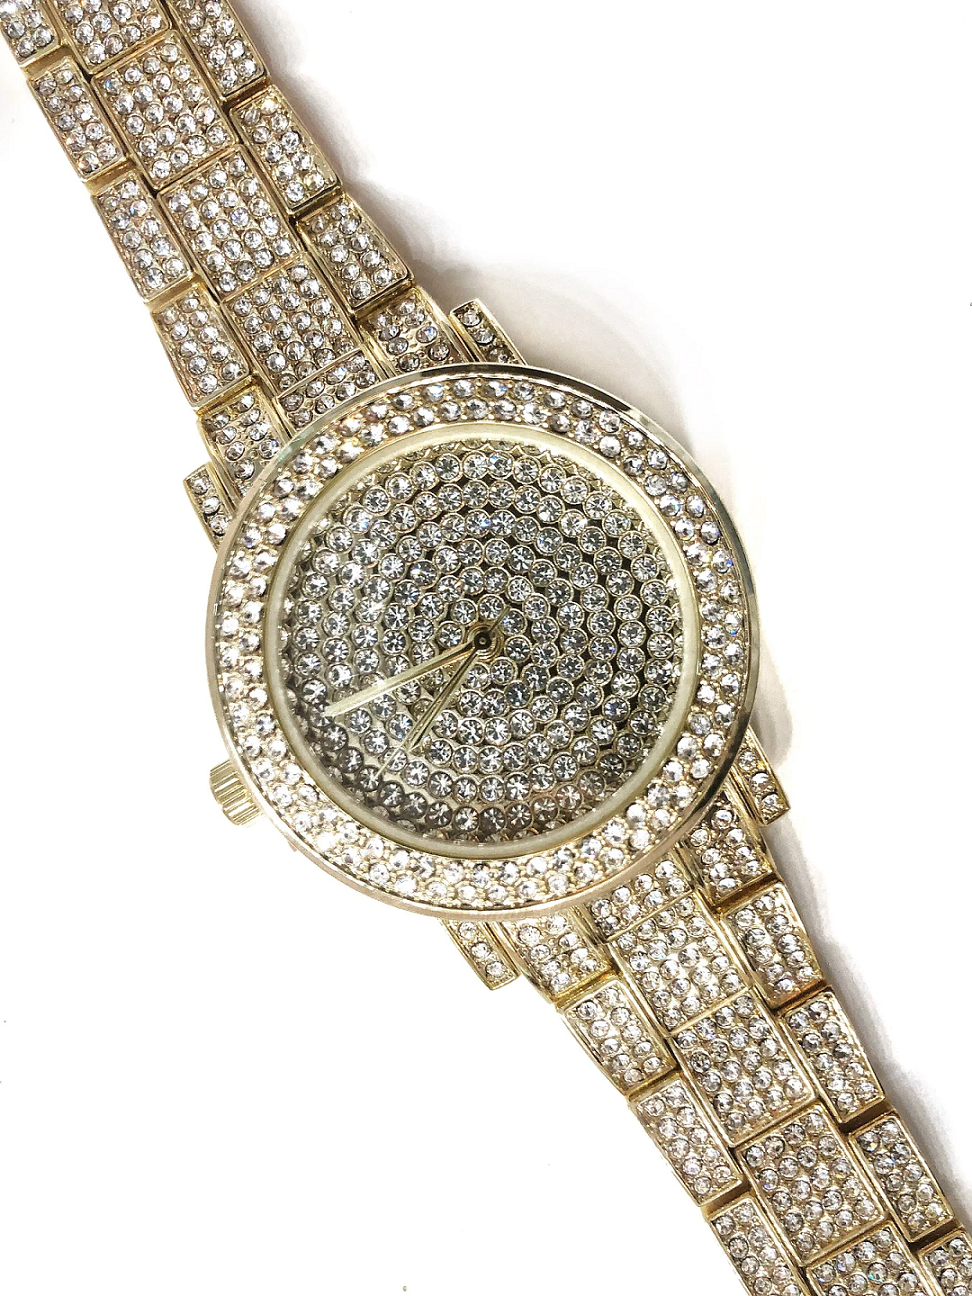 BEST WOMEN'S Bling WATCHES 2021 Rich Gal Gold Watch with Diamond Dial and Bracelet Strap